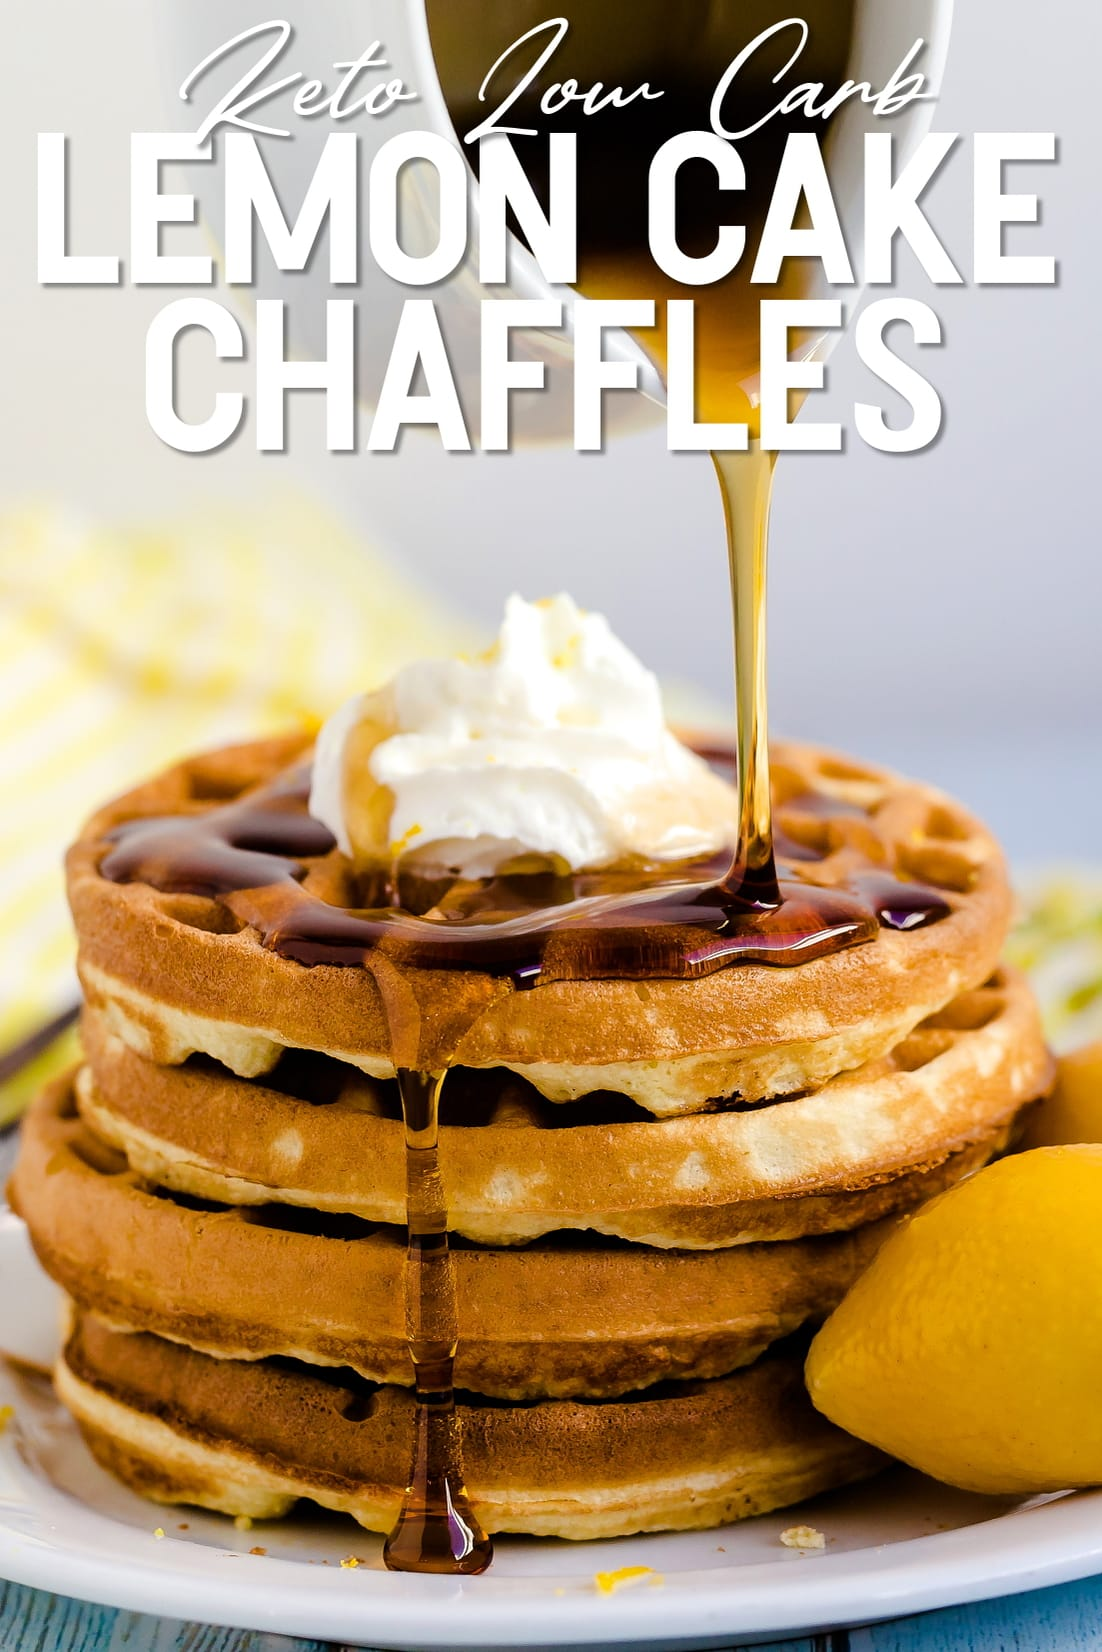 Lemon Cake Chaffles with whip cream and keto maple syrup being poured